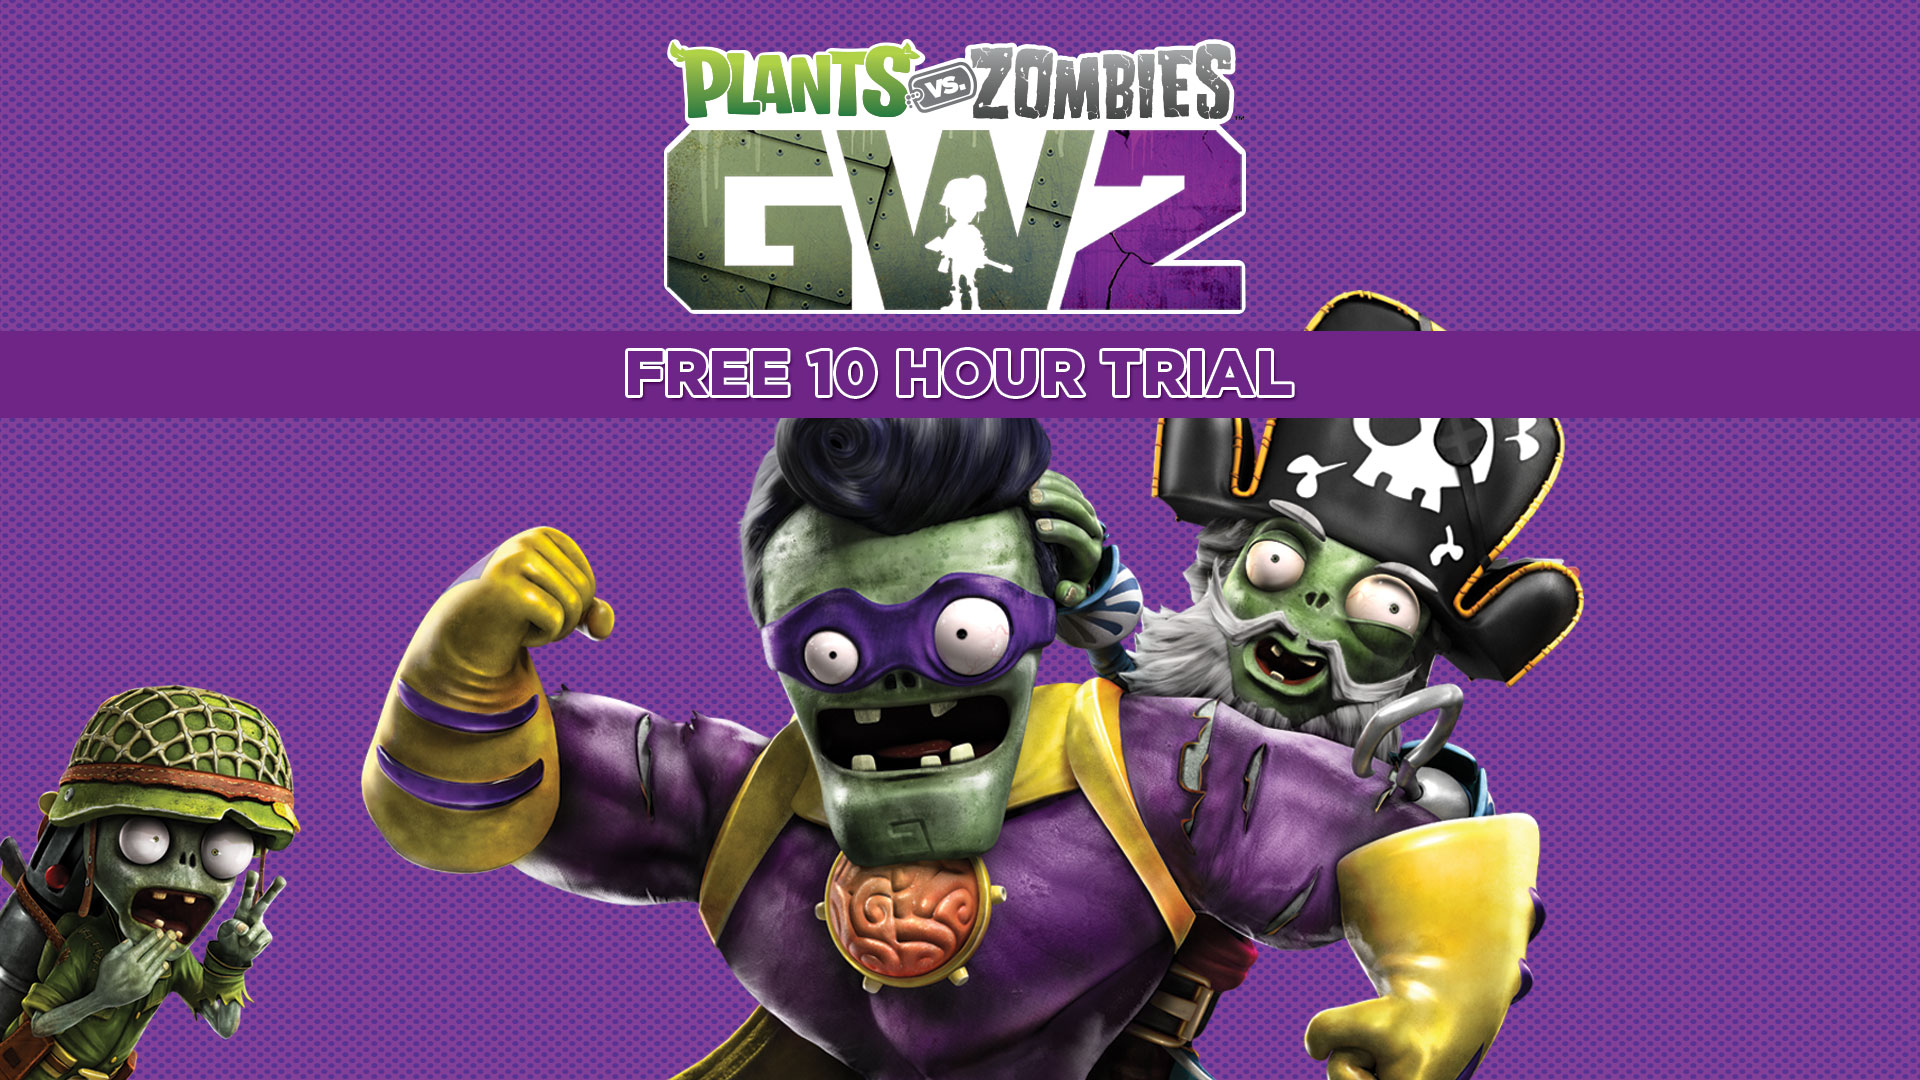 you can play plants vs zombies garden warfare 2 free for up to 10 hours xbox one xbox 360 news at xboxachievementscom - Plants Vs Zombies Garden Warfare 2 Xbox 360